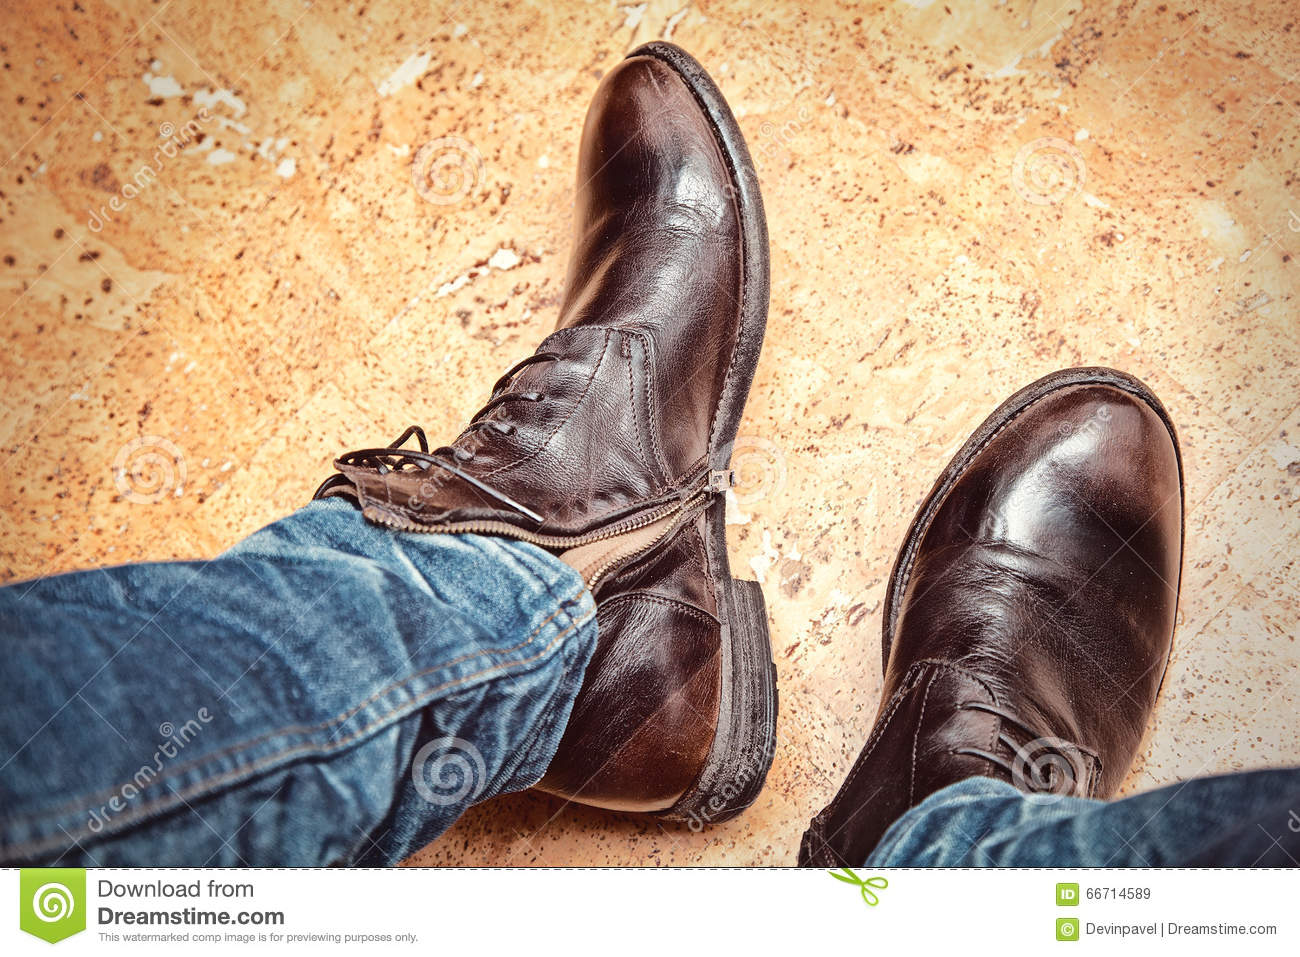 Men Fashion Legs In Blue Jeans And Brown Leather Boots Stock Image